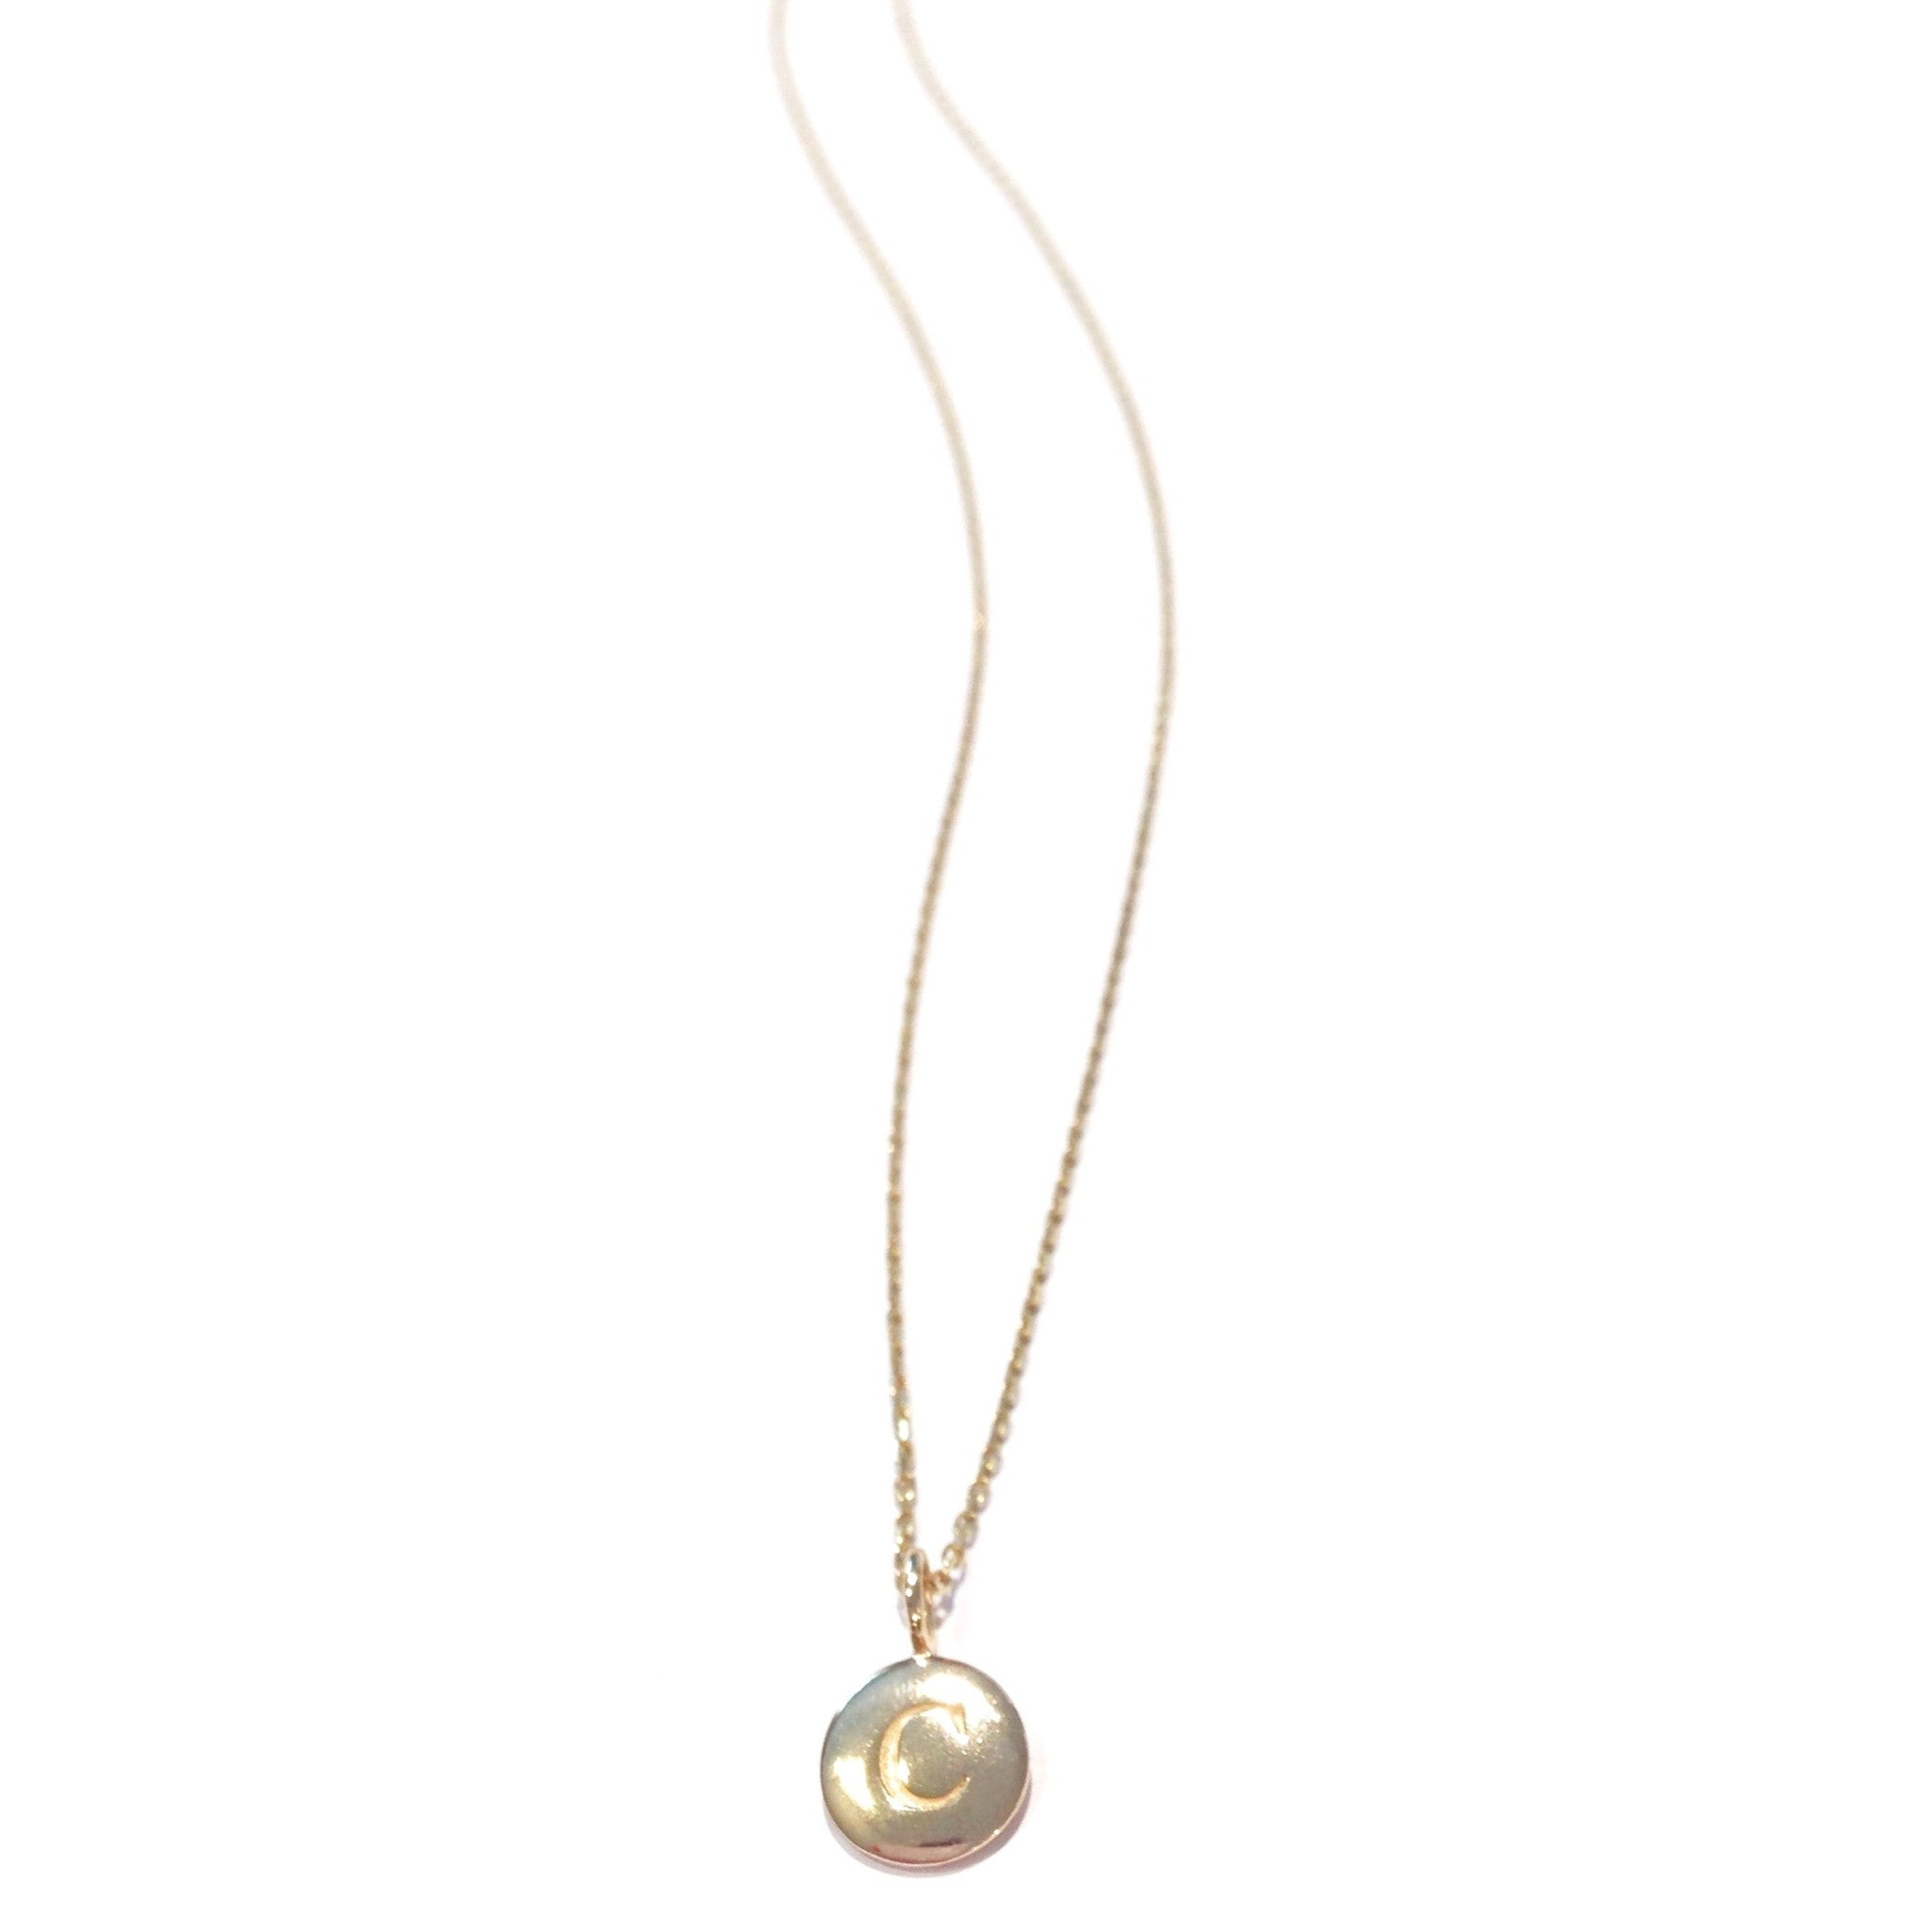 14kt Gold-Filled Initial Necklace, $22 | Light Years Jewelry